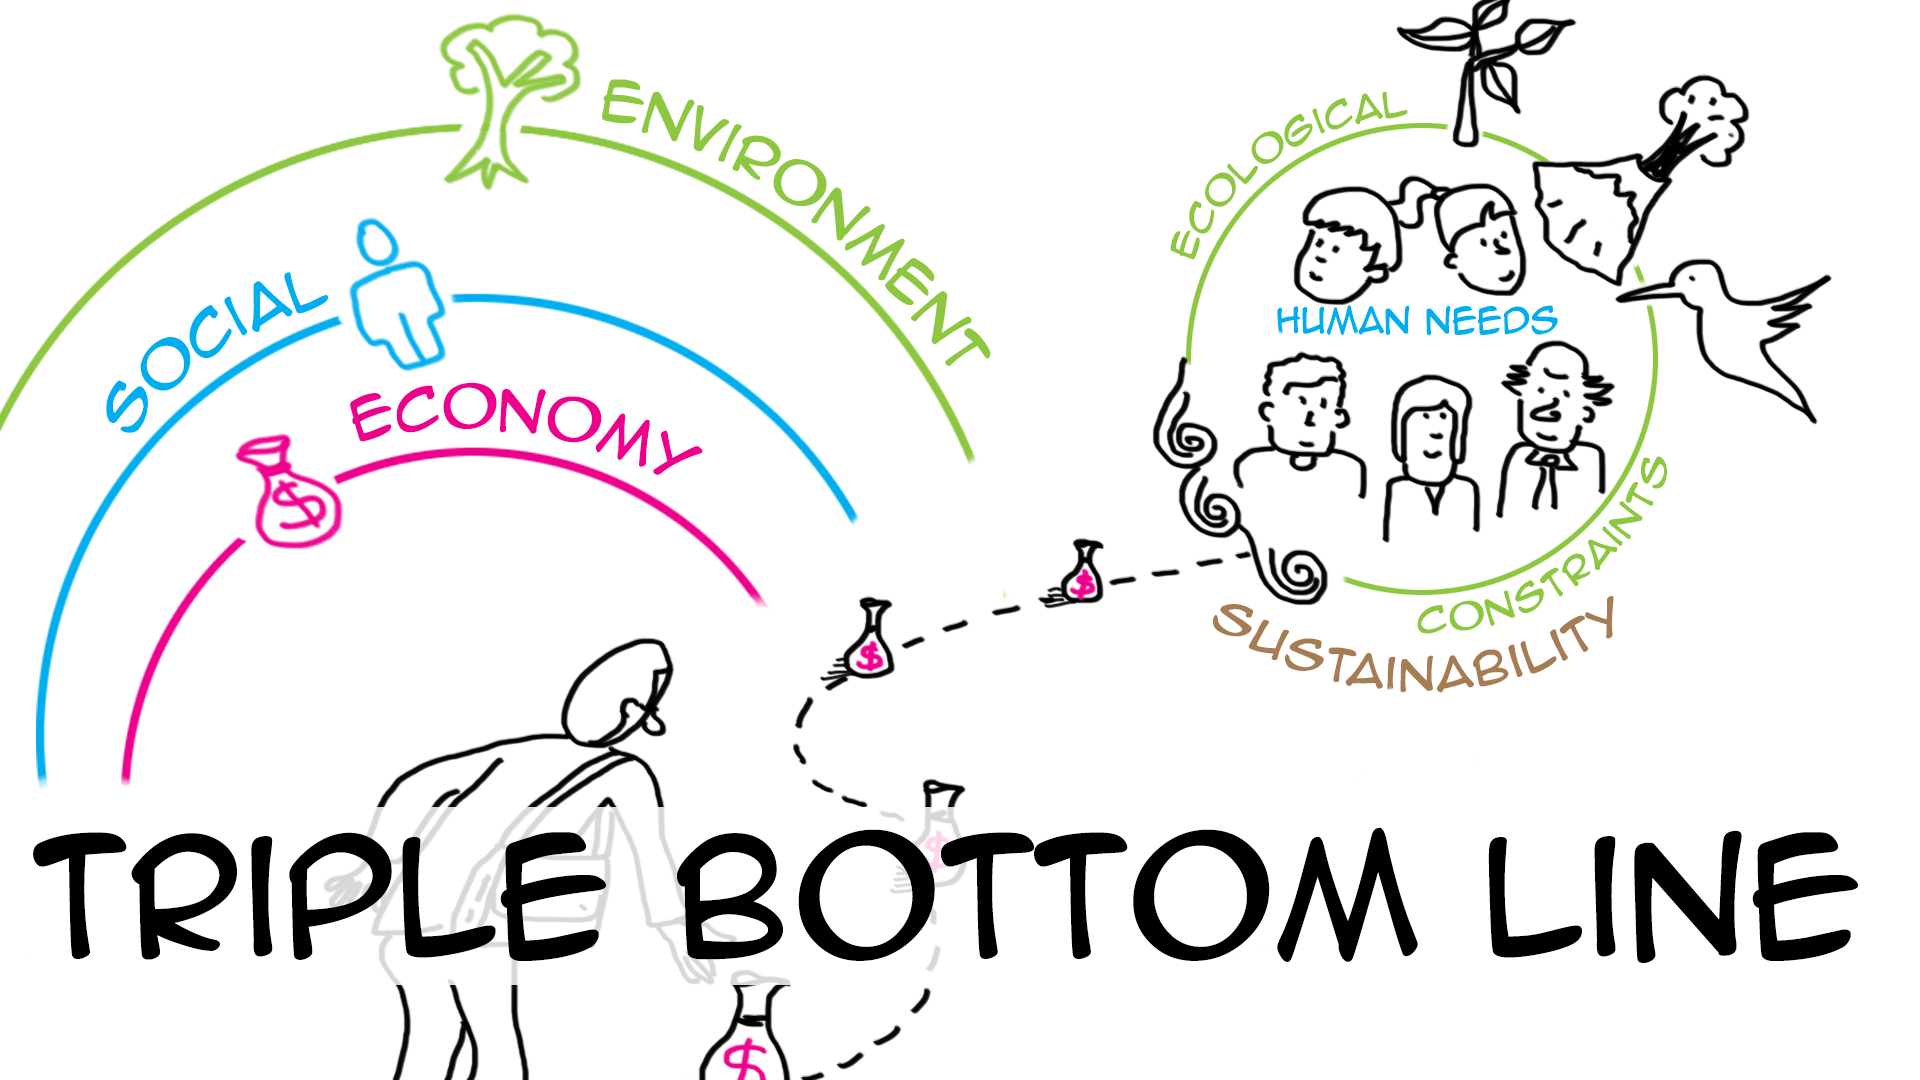 Triple bottom line: the science of good business